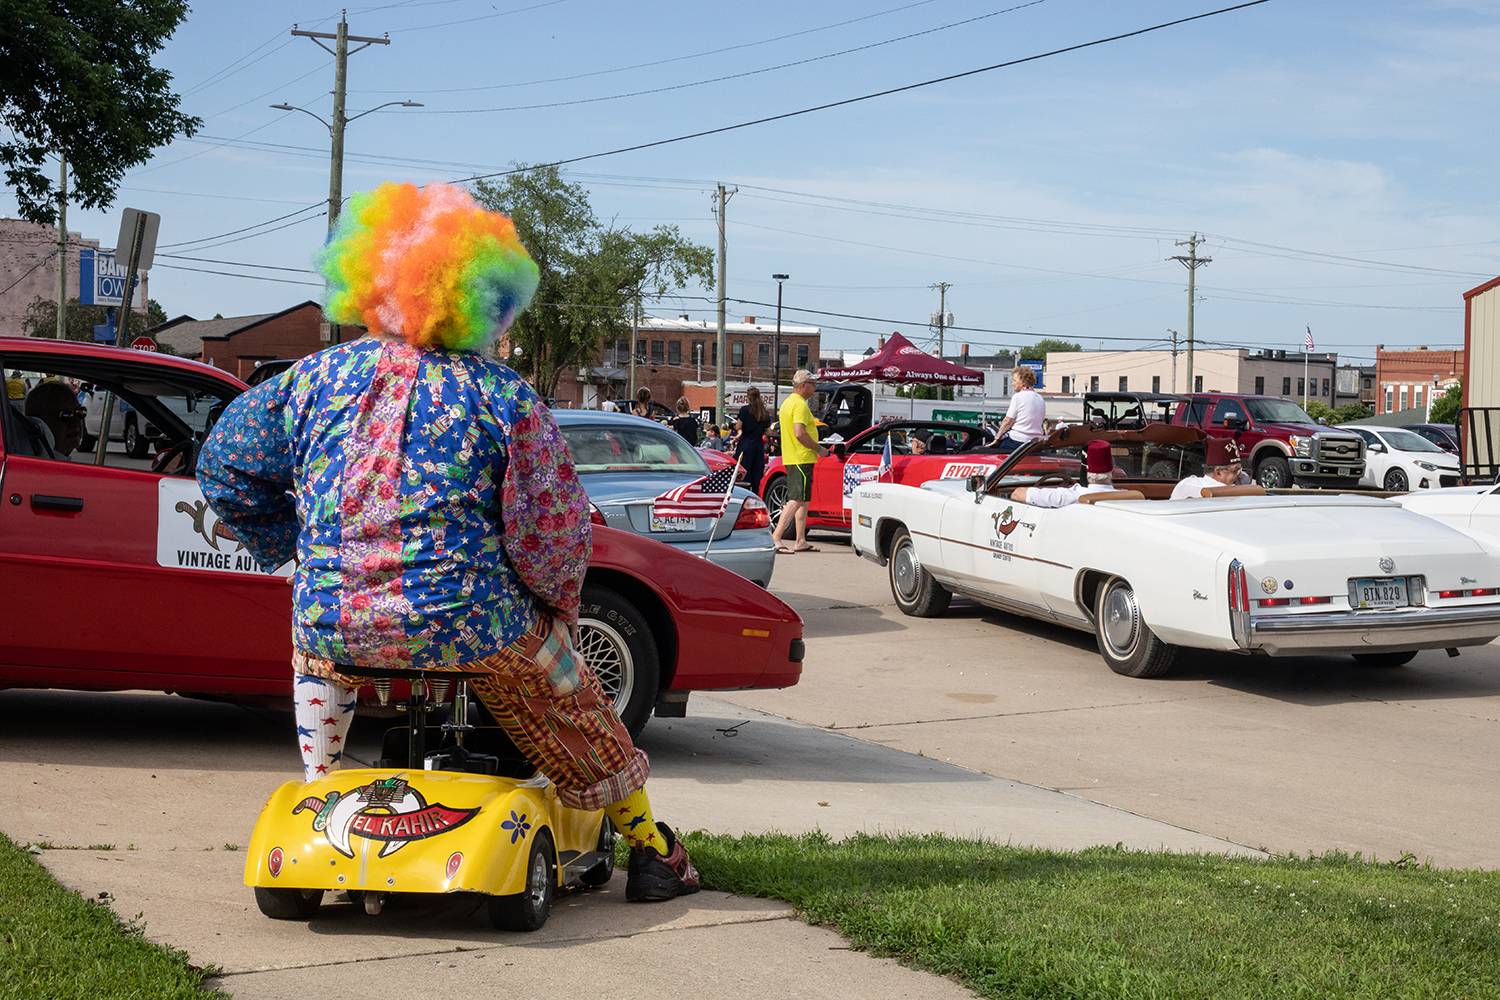 Vintage+Auto+Shrine+Member+Bruce+Herbert+sits+atop+his+vehicle+before+the+annual+4th+of+July+parade+in+Independence%2C+Iowa.+This+is+the+159th+4th+of+July+parade+in+Independence.+